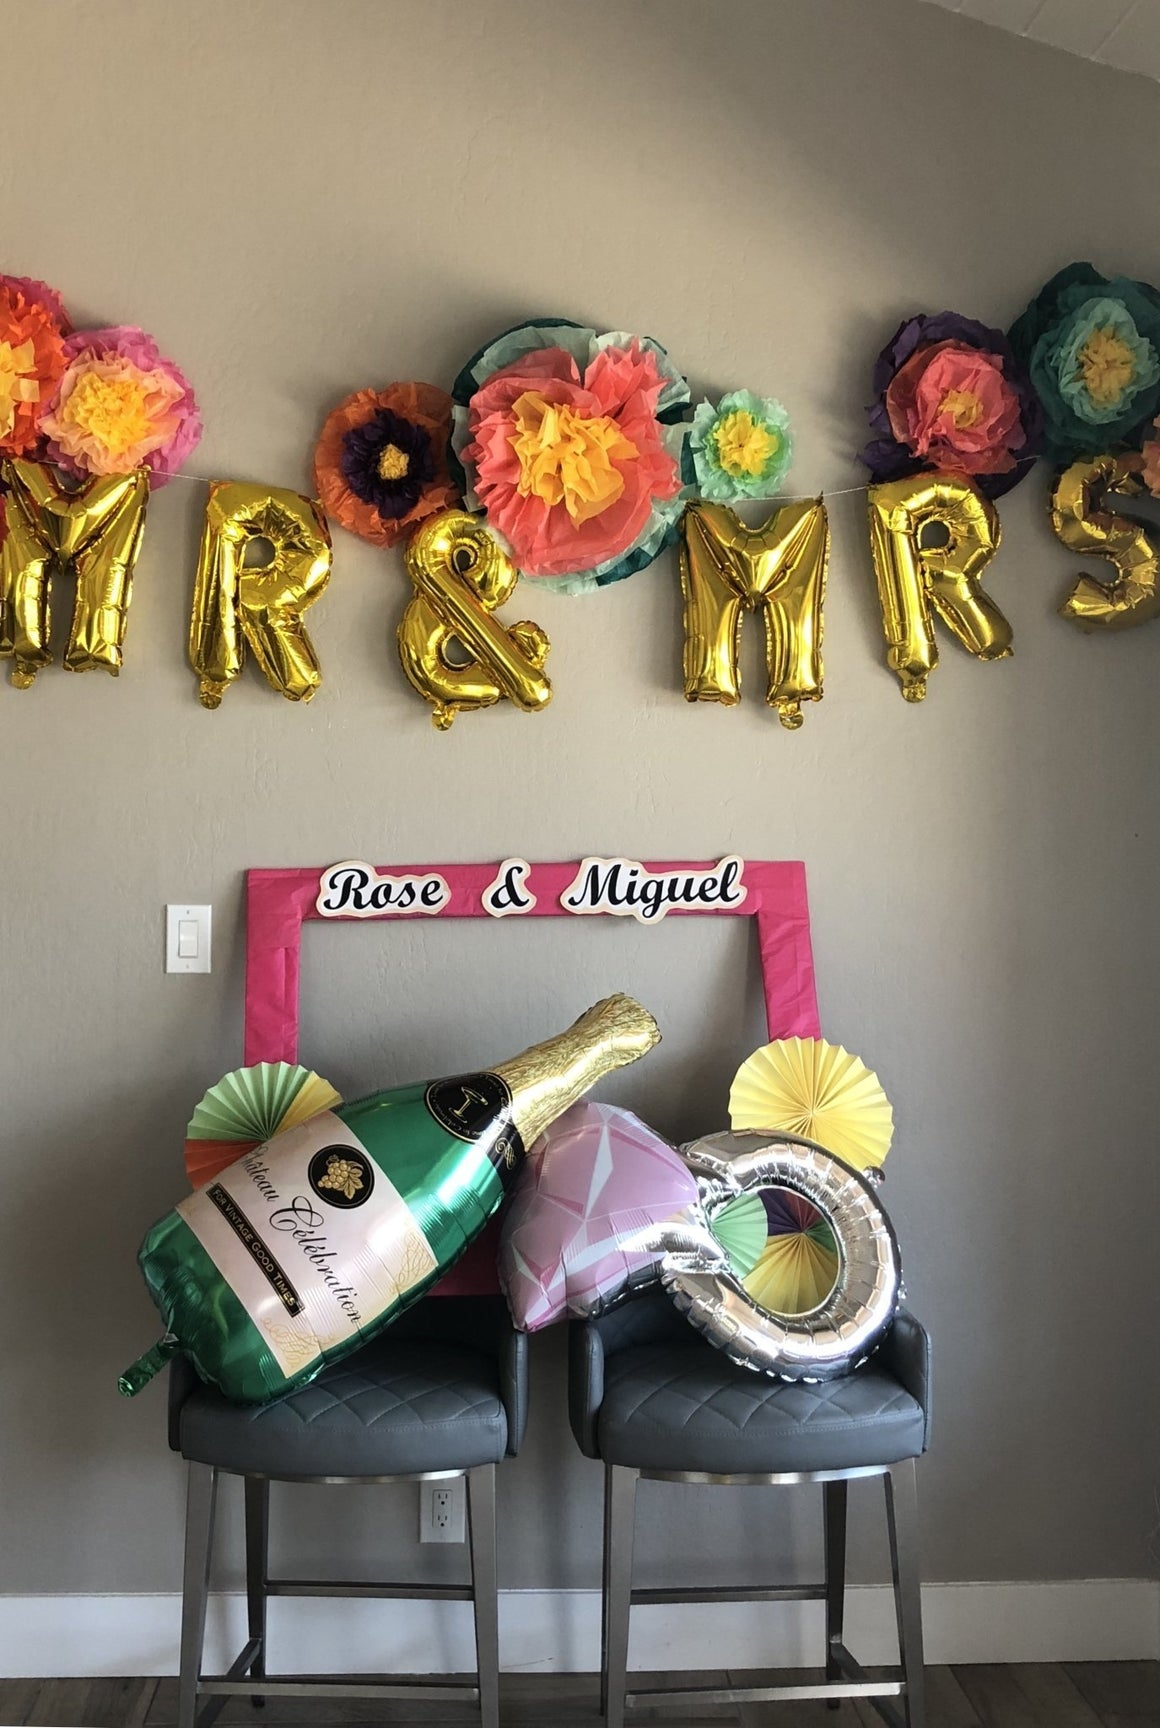 Champagne Bottle & Engagement Ring Balloon Set - Pretty Collected